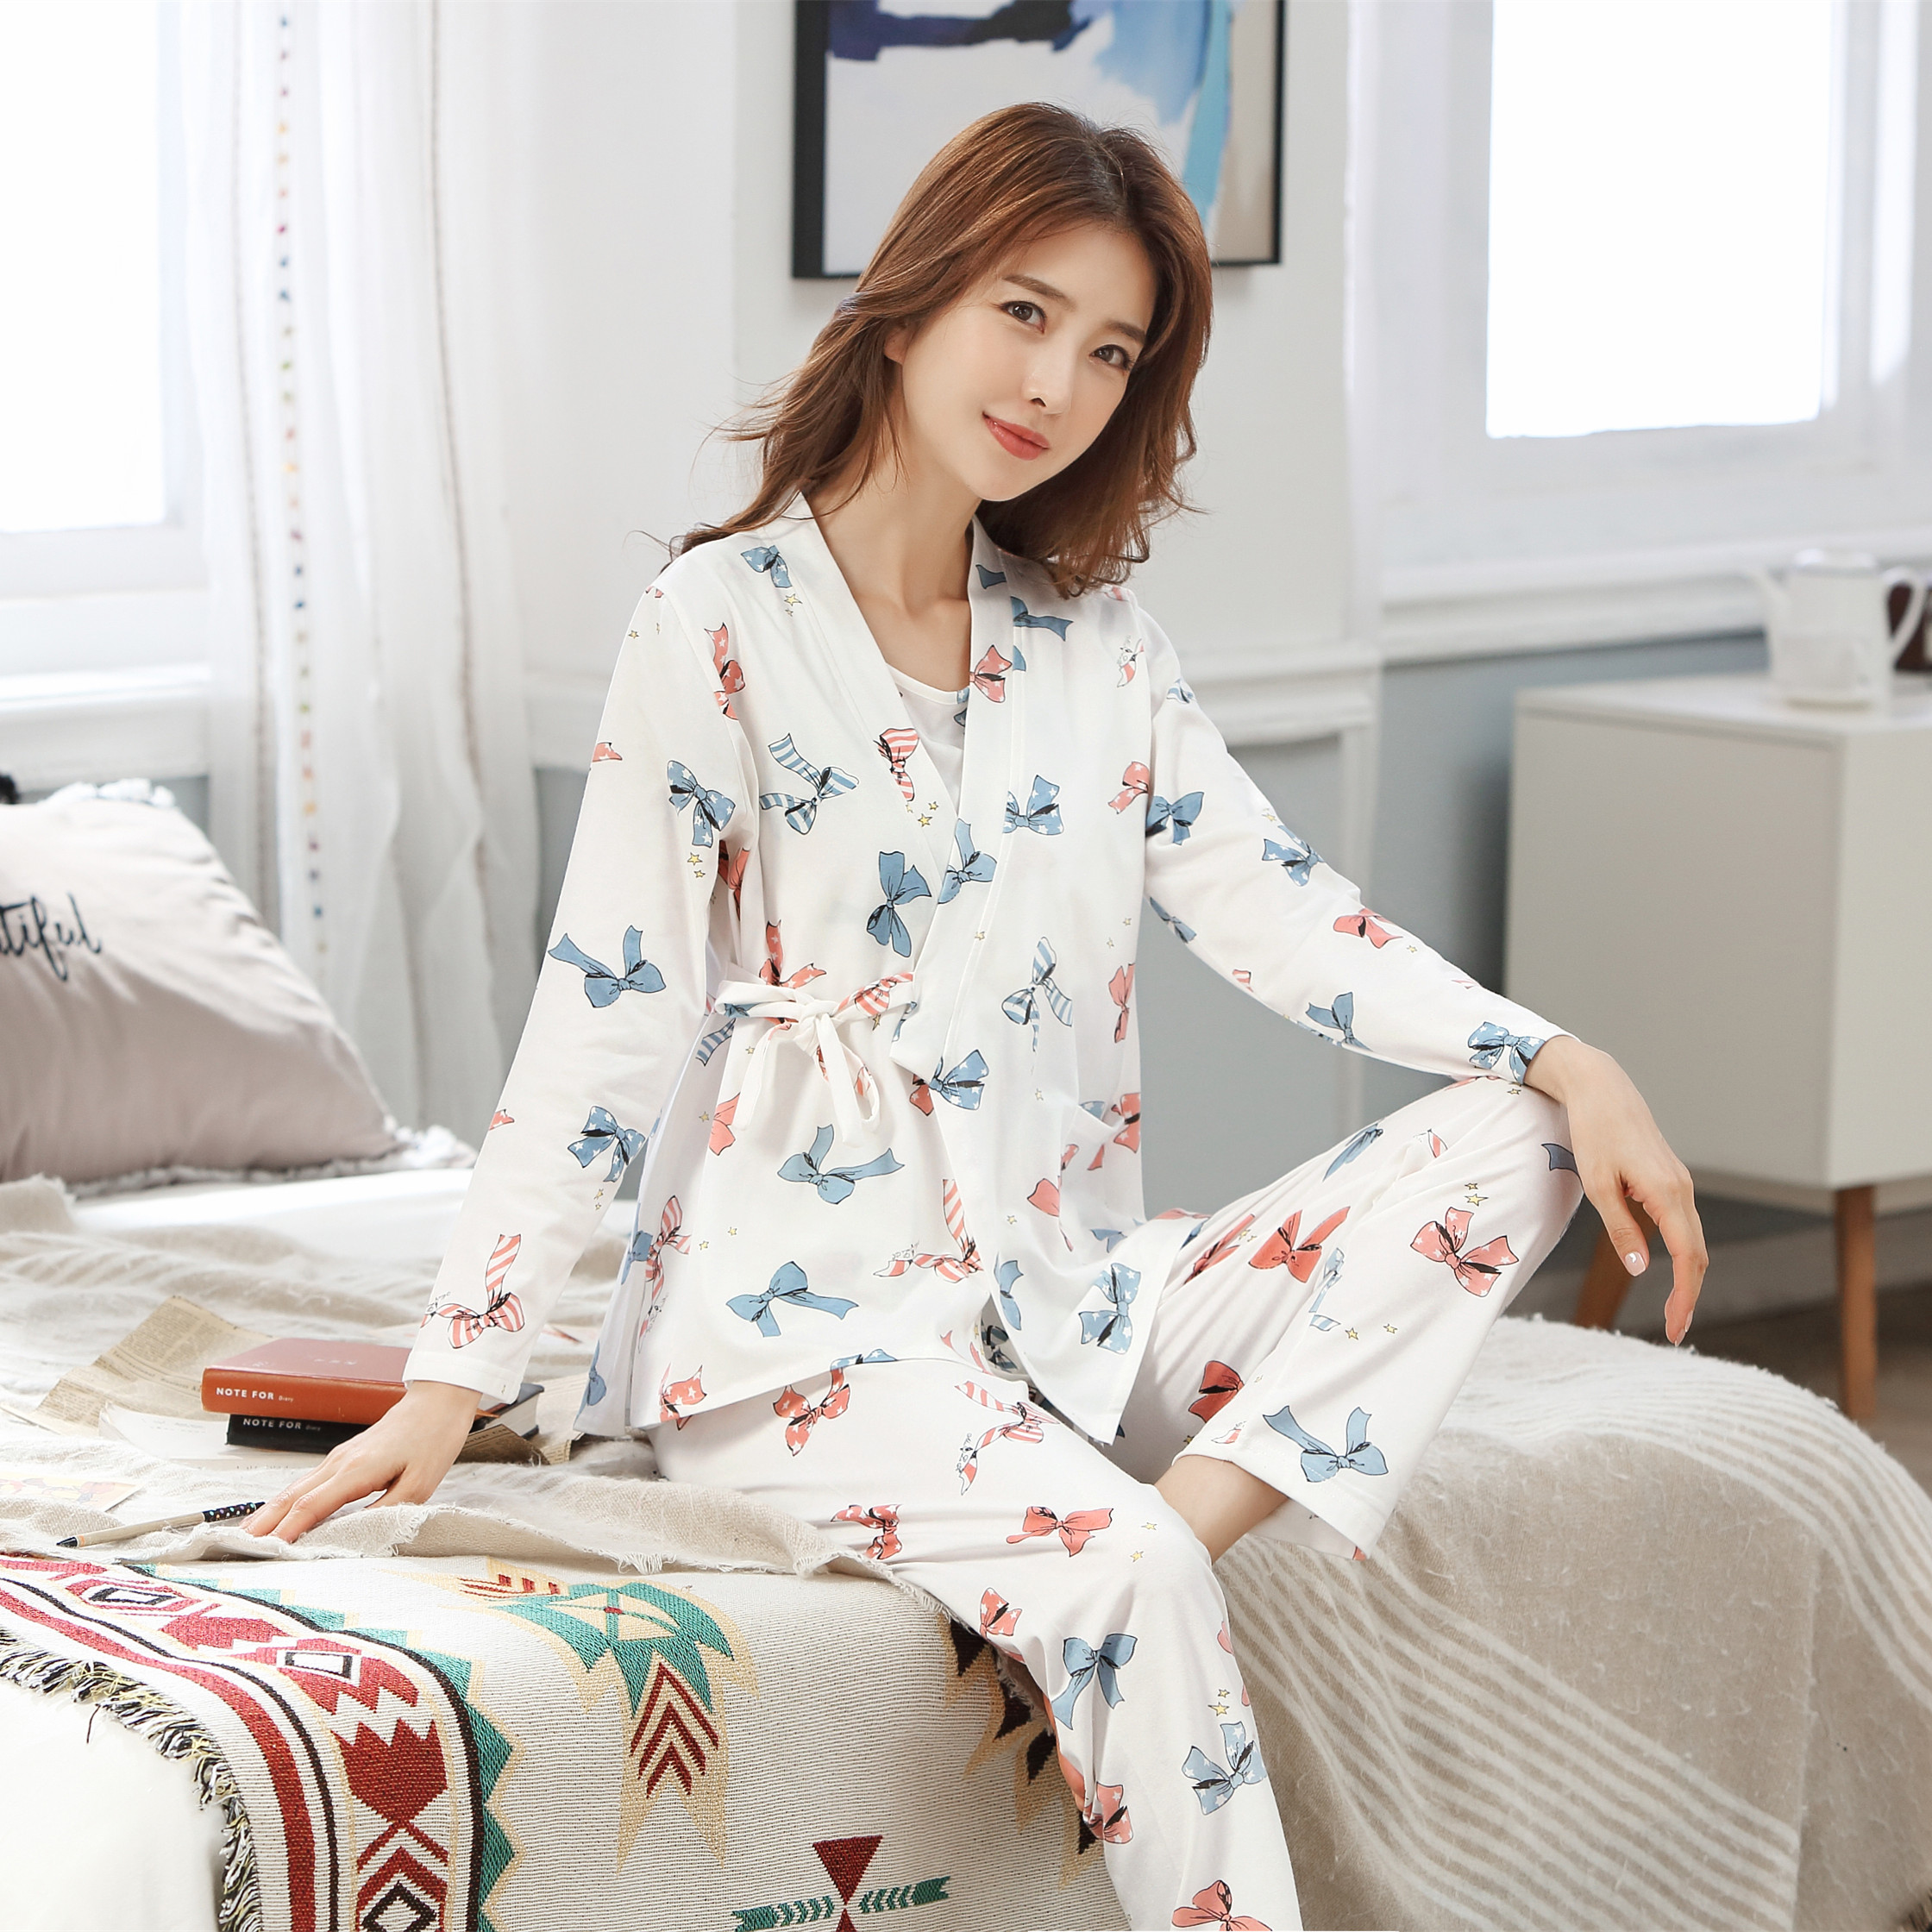 3 PCs/Set Printed Maternity Nursing Sleepwear Breastfeeding Nightwear For Pregnant Women Pregnancy Breast Feeding Pajamas Suits